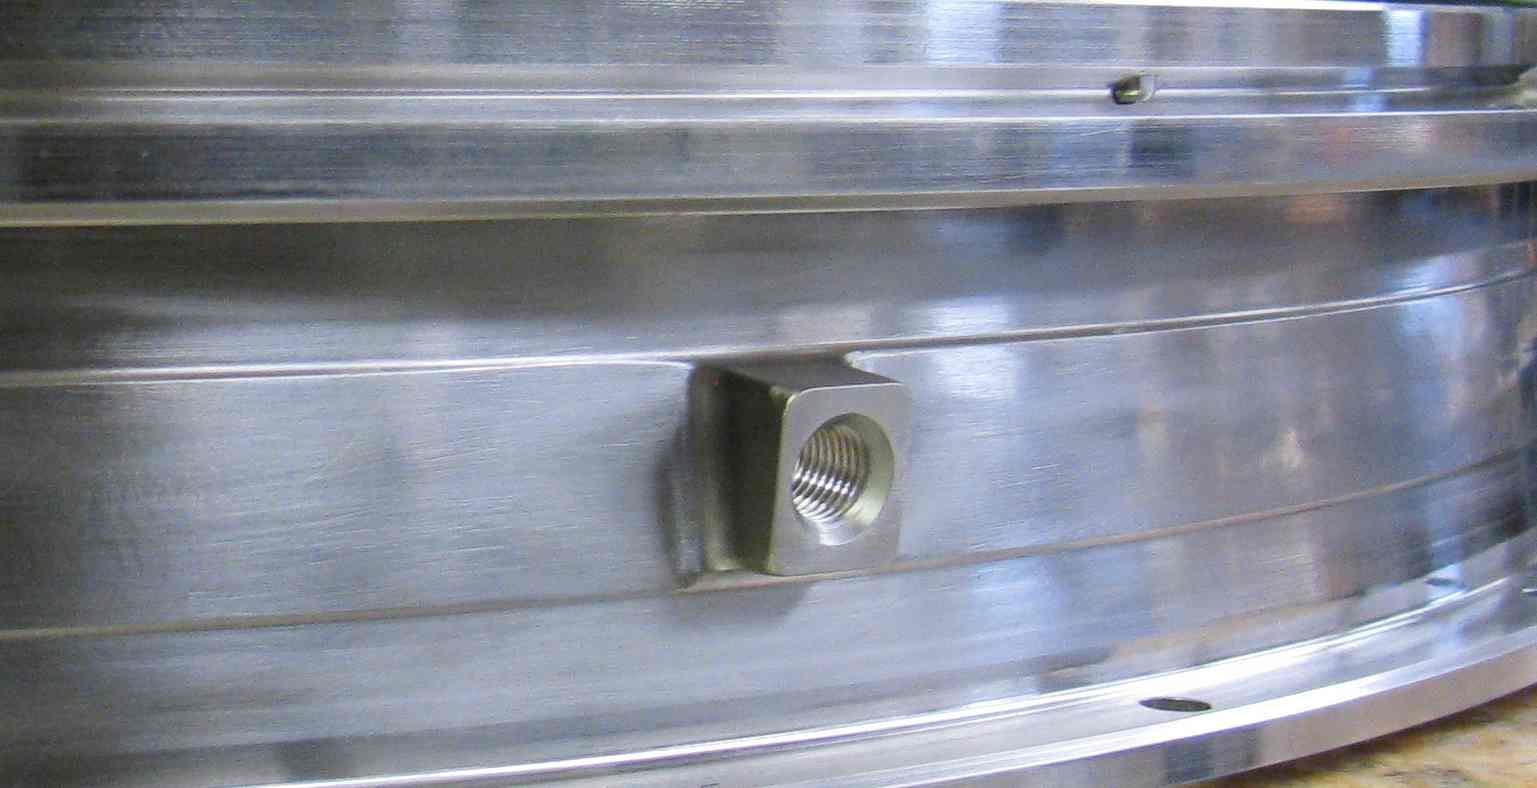 http://aerospaceconsultants.com/wp-content/uploads/2014/11/Stacking-Ring-Lug.jpg